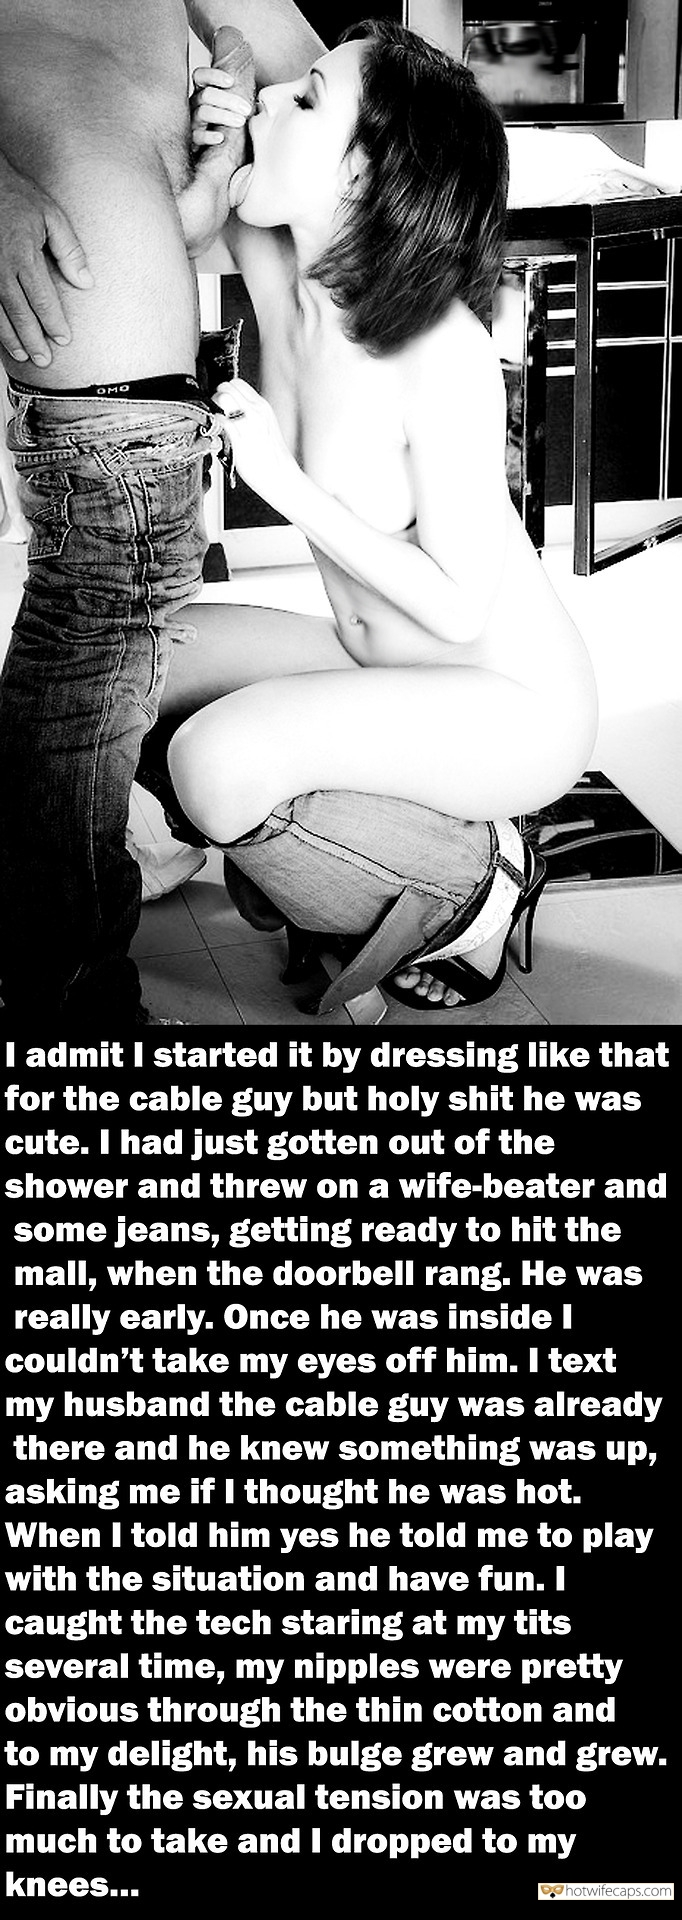 Cuckold Stories Cheating Blowjob  hotwife caption: I admit I started it by dressing like that for the cable guy but holy shit he was cute. I had just gotten out of the shower and threw on a wife-beater and some jeans, getting ready to hit the...